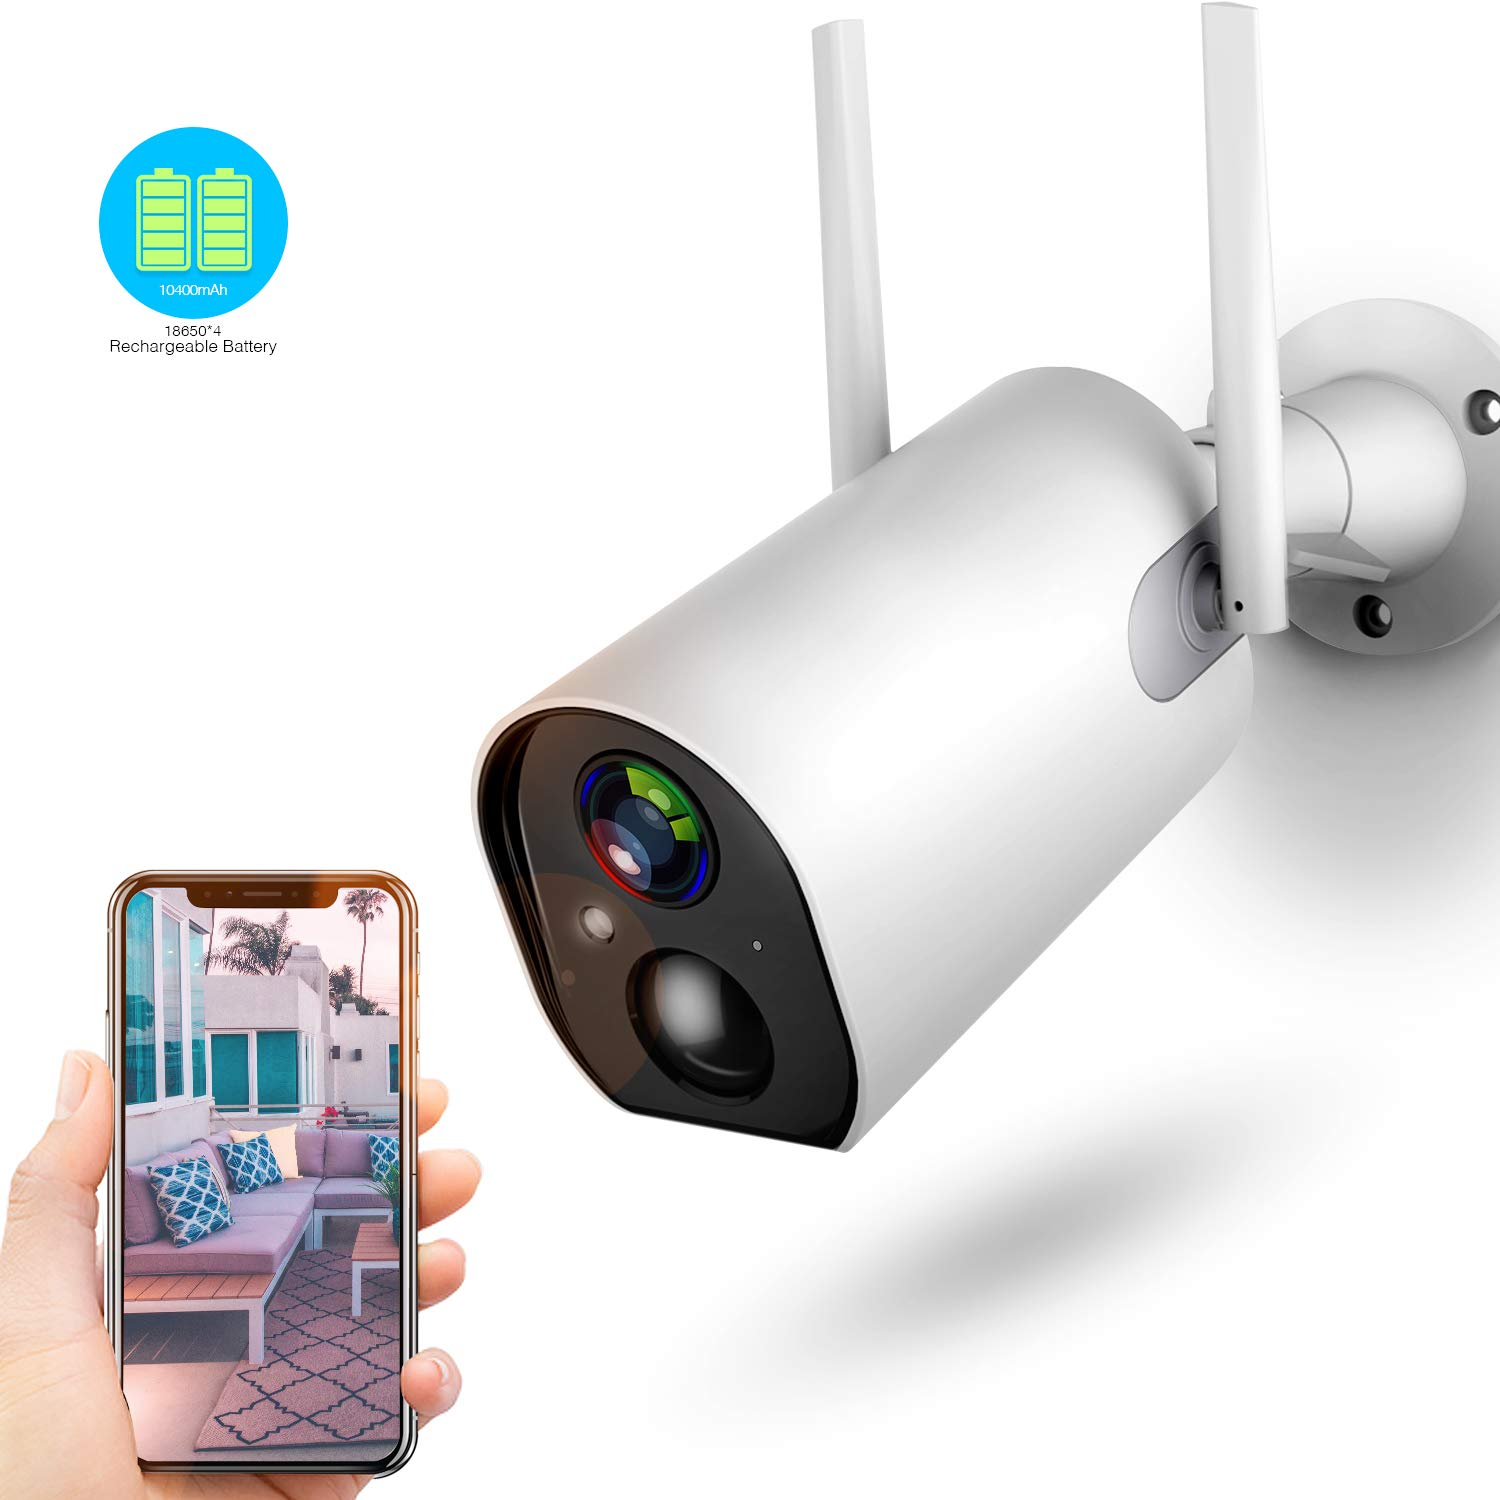 Wireless, Rechargeable,Indoor or Outdoor Security Camera